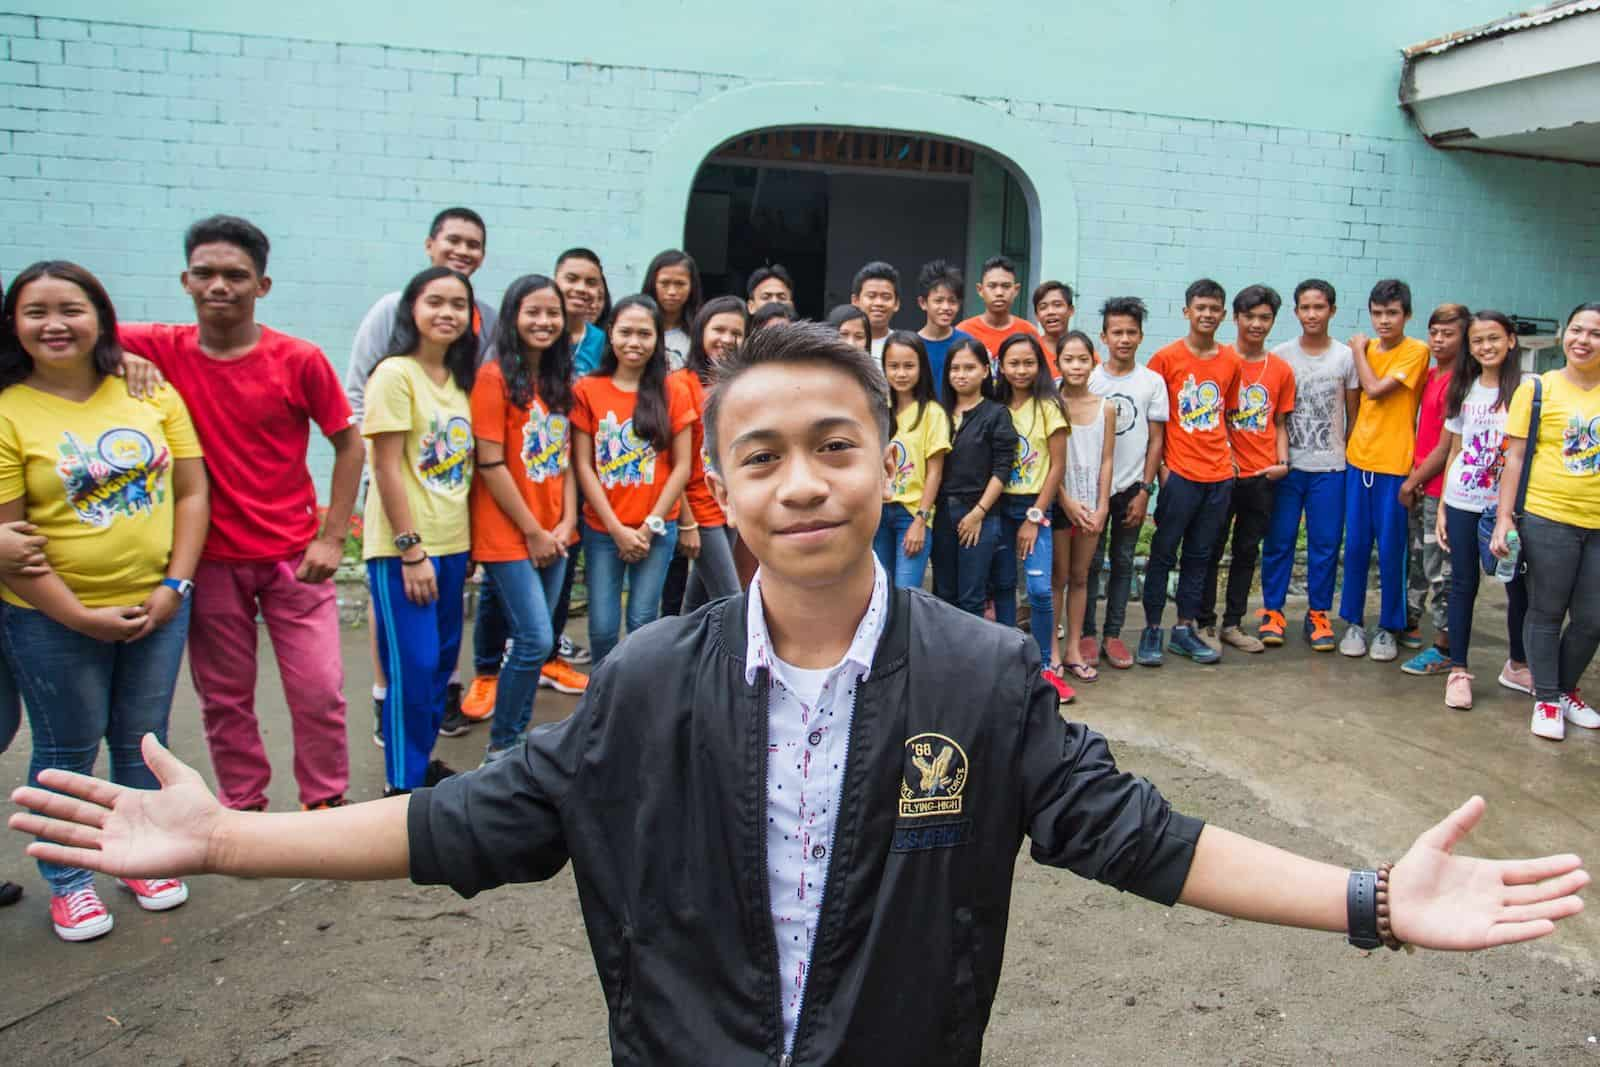 """A teen boy, the """"Most Excellent Child in the Philippines,"""" wearing a black jacket and white shirt holds his arms out to the side, smiling, standing in front of a large group of children in front of a church."""